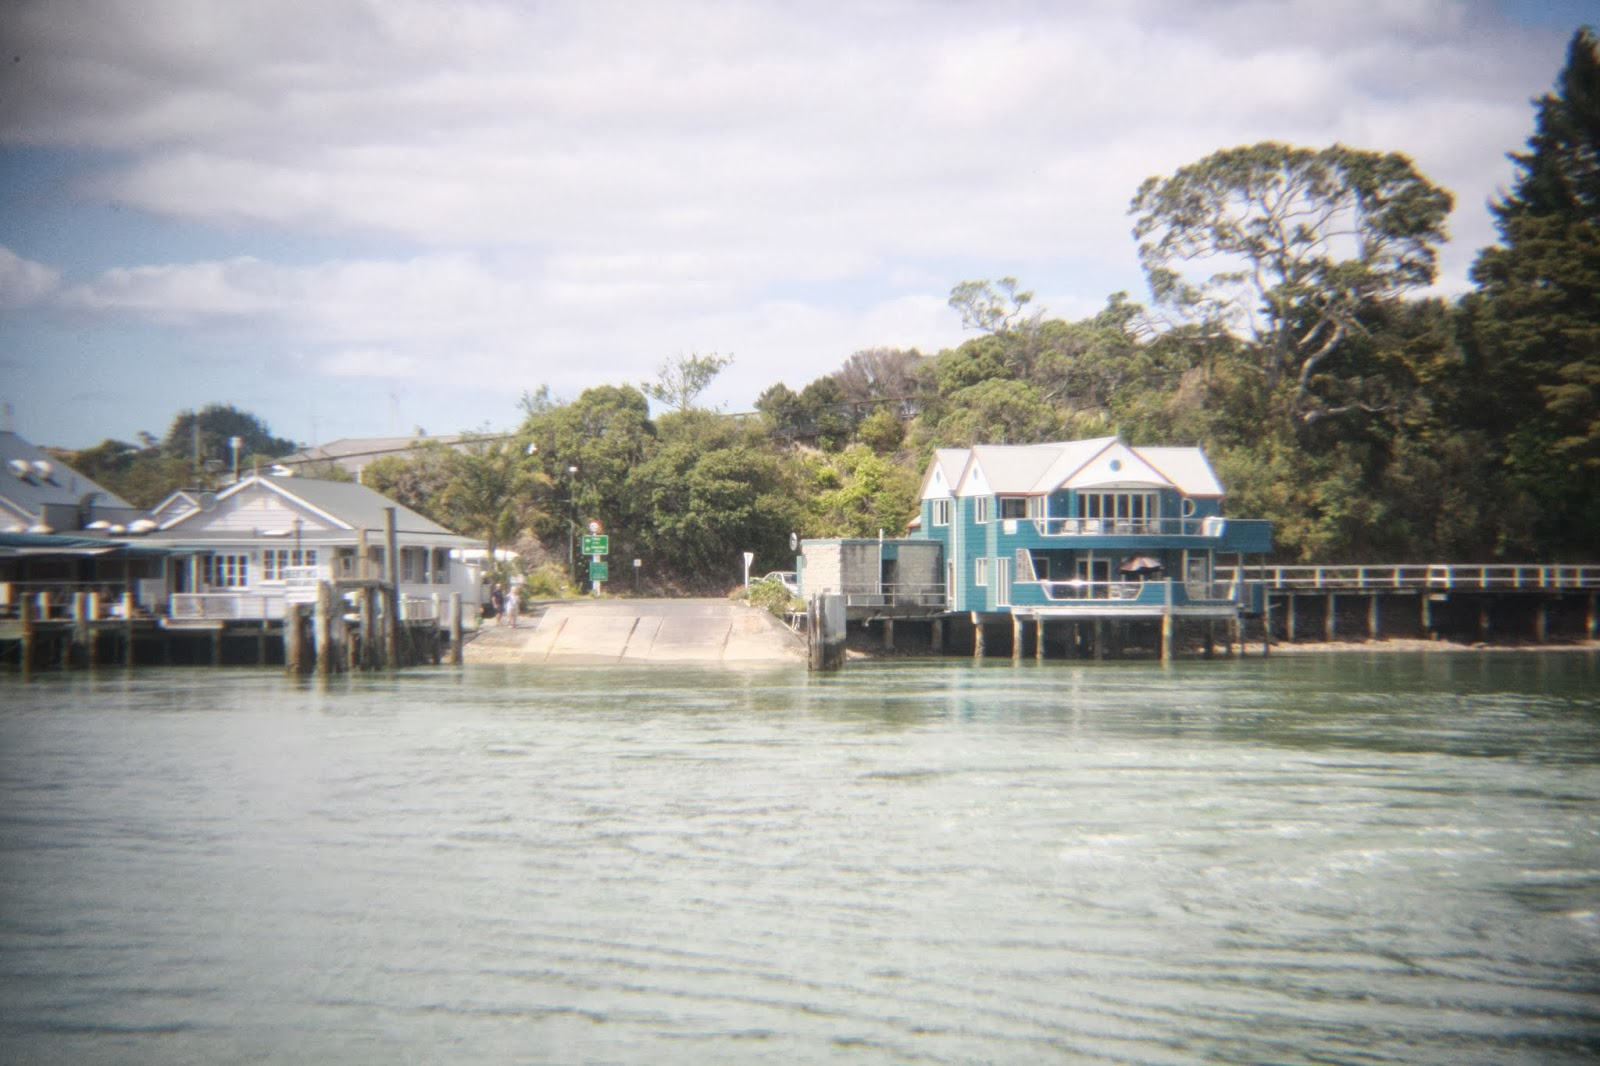 A shot from the ferry, just leaving Paihia.